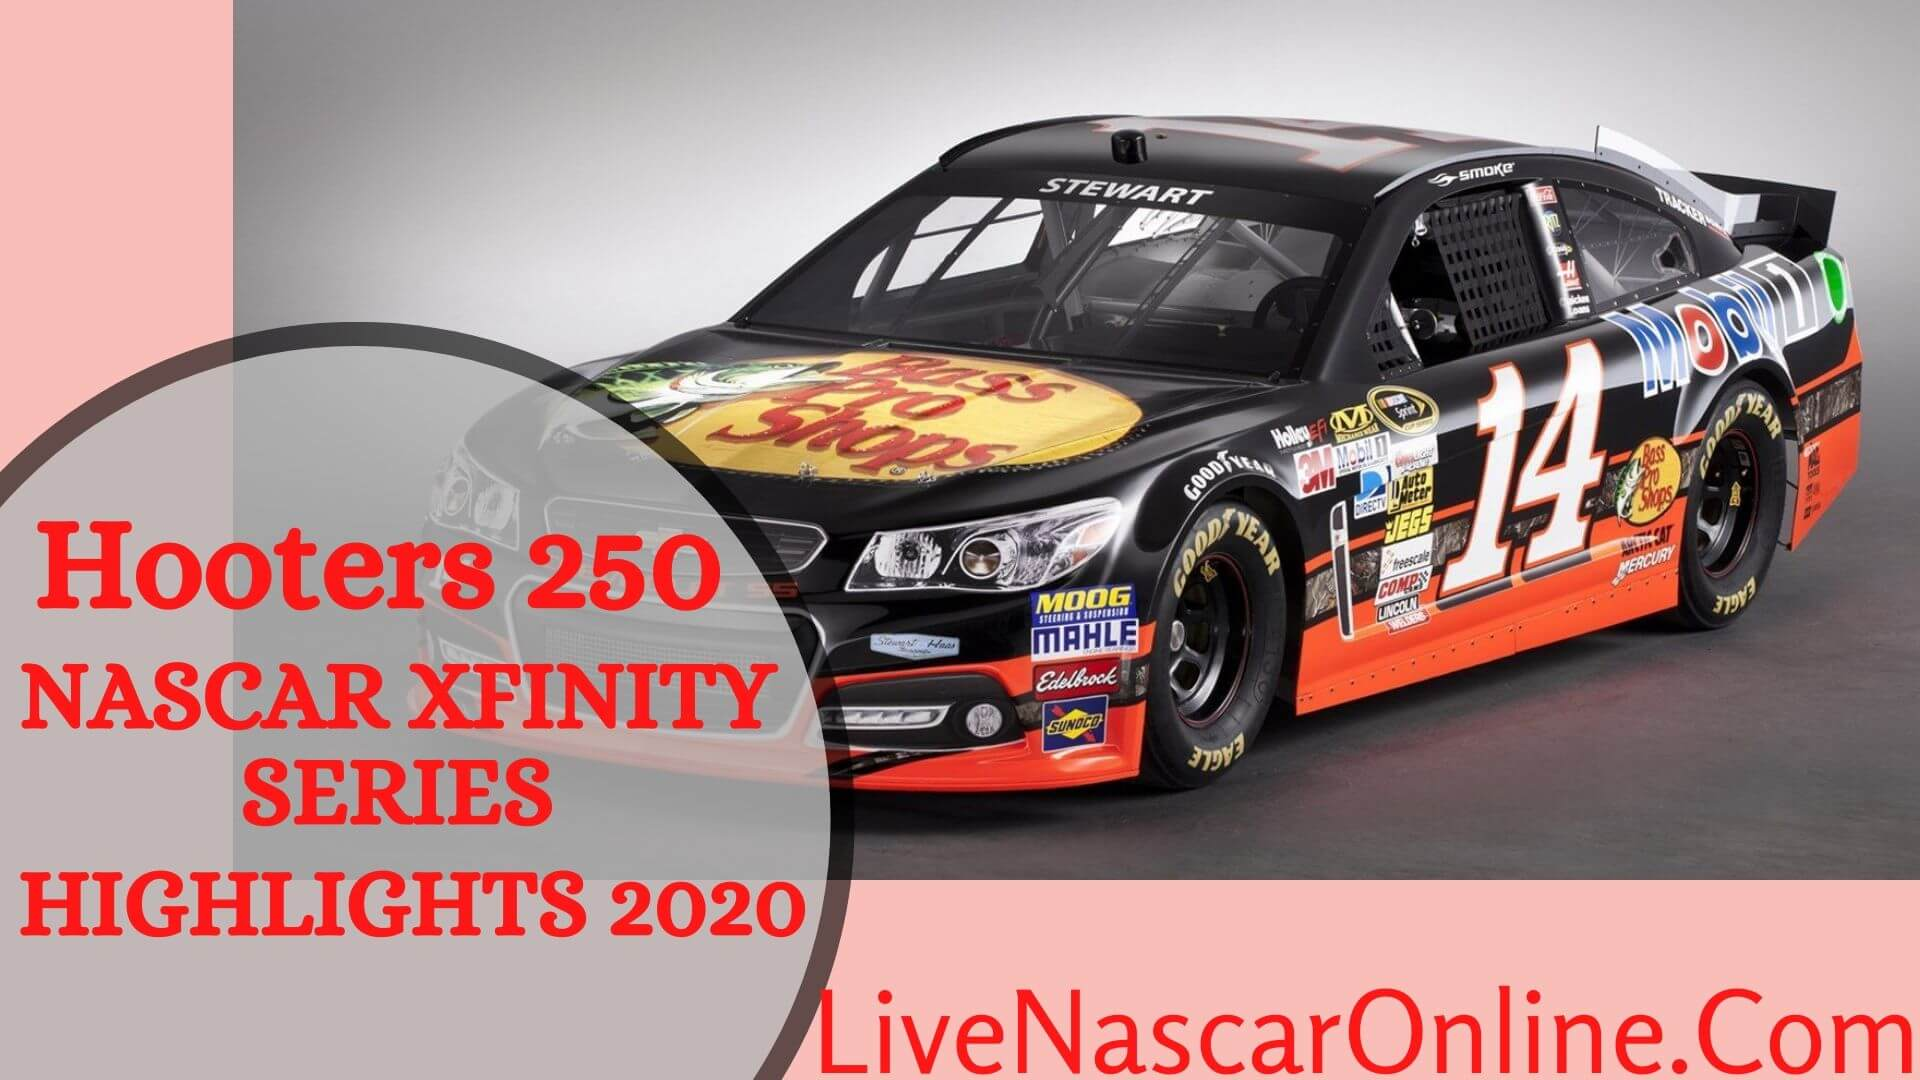 Highlights 2020 Hooters 250